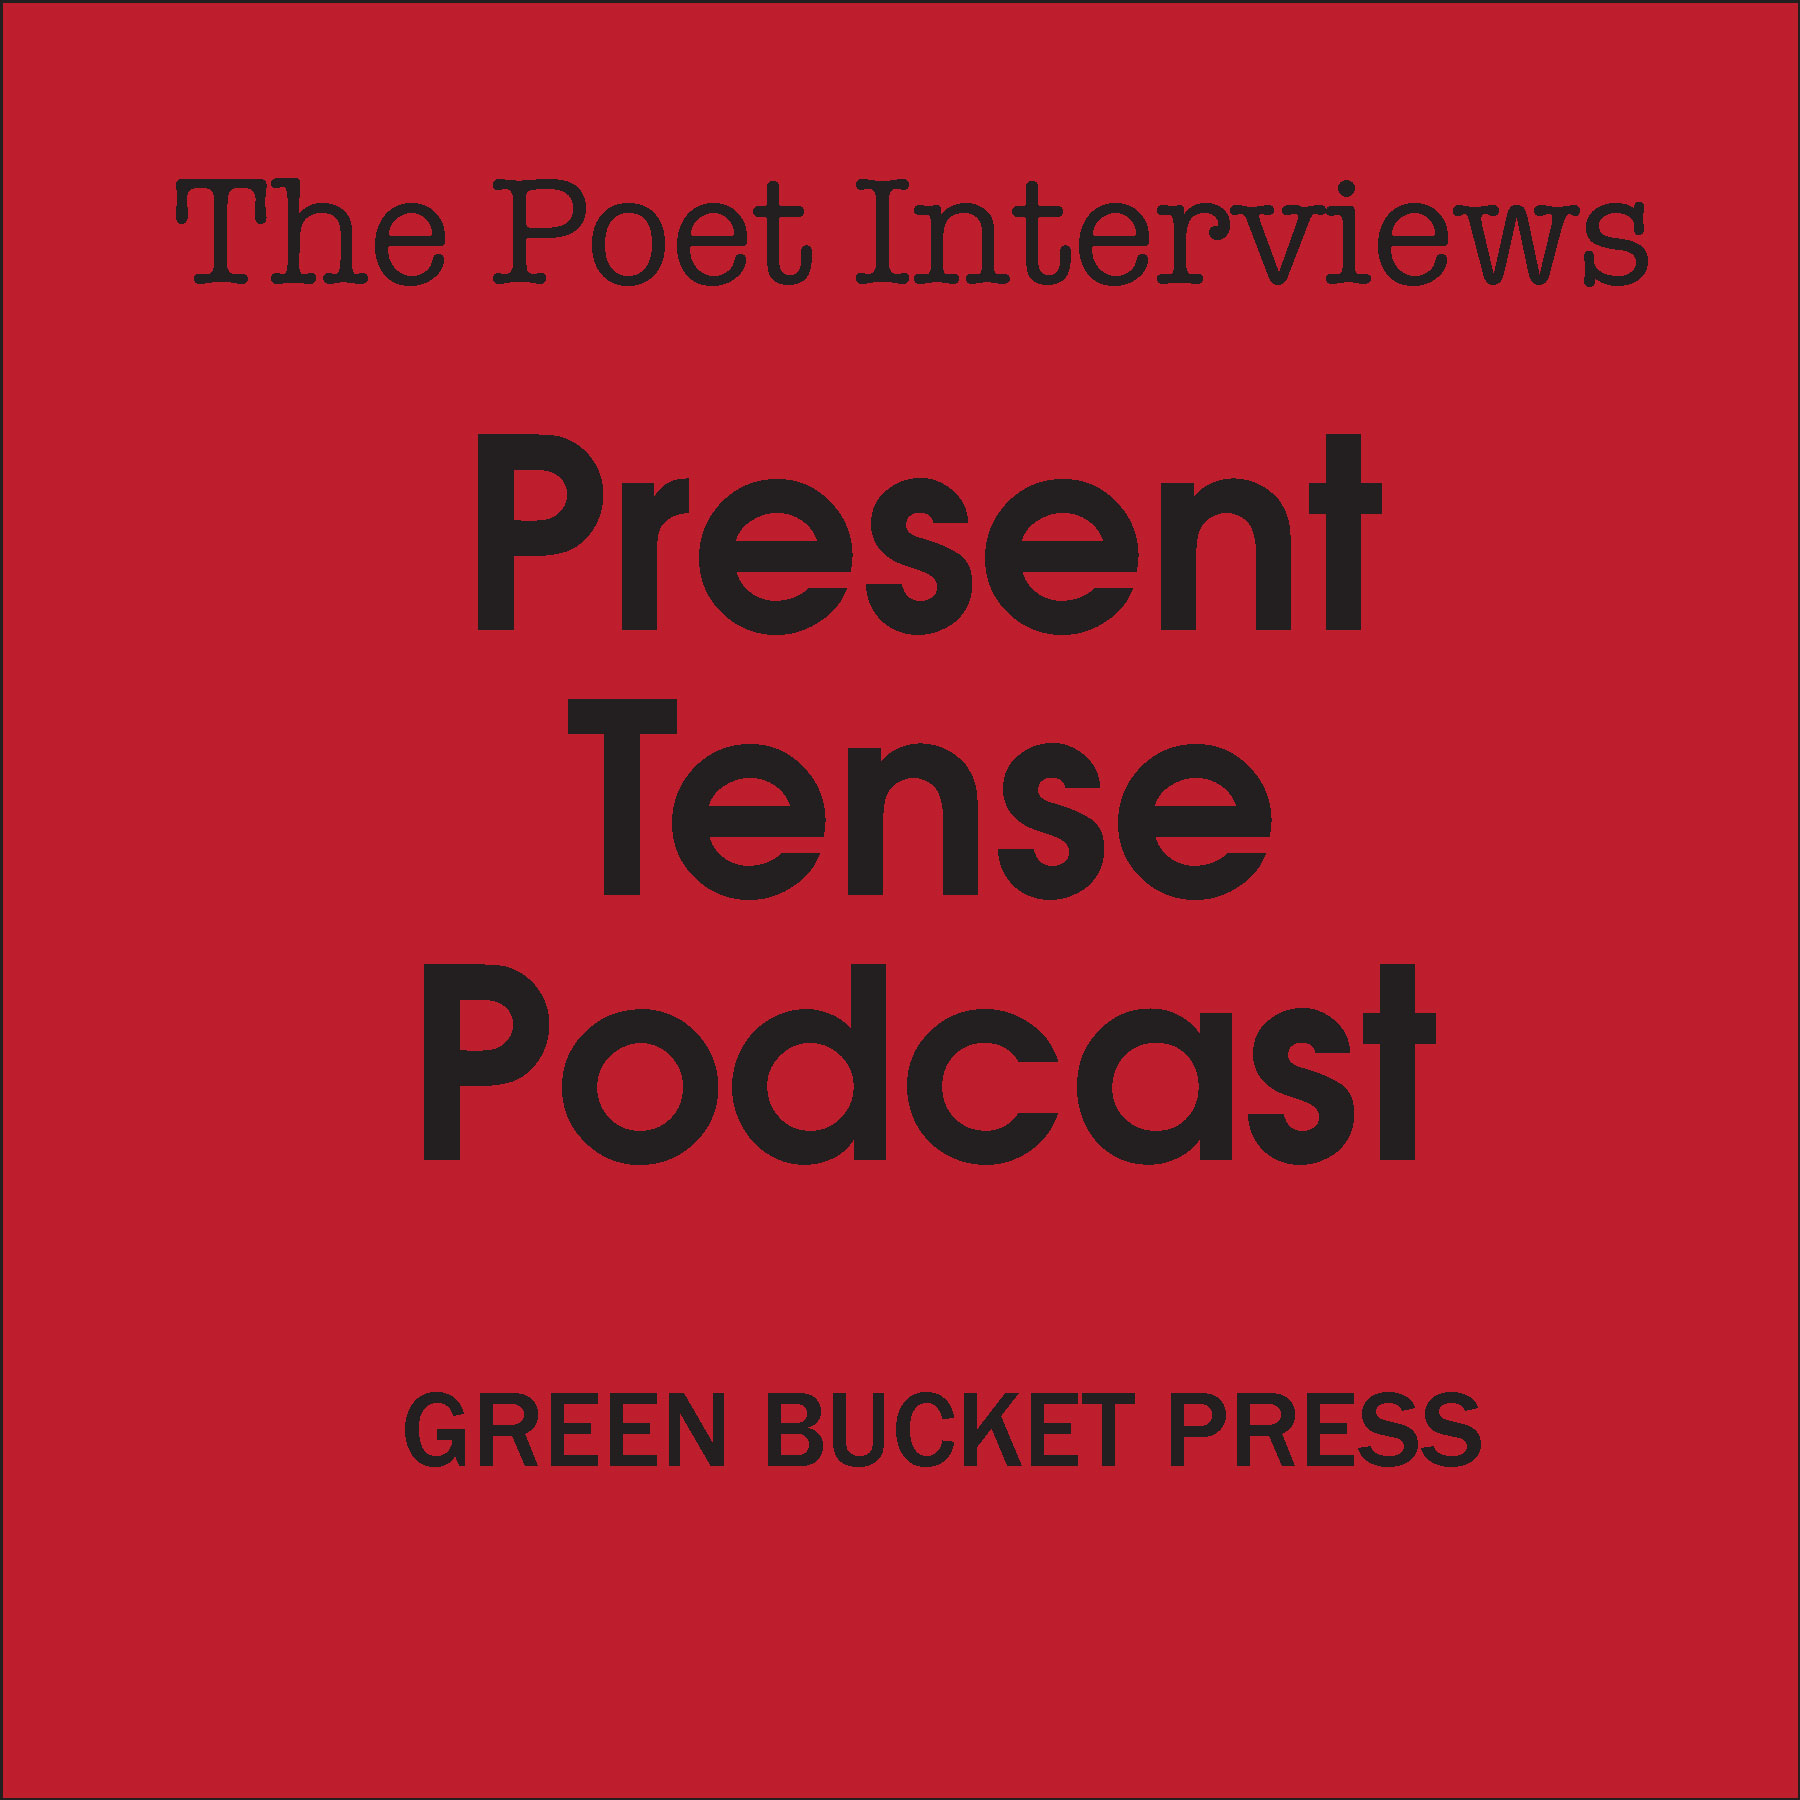 Poet-Interviews_Square_Icon5.jpg